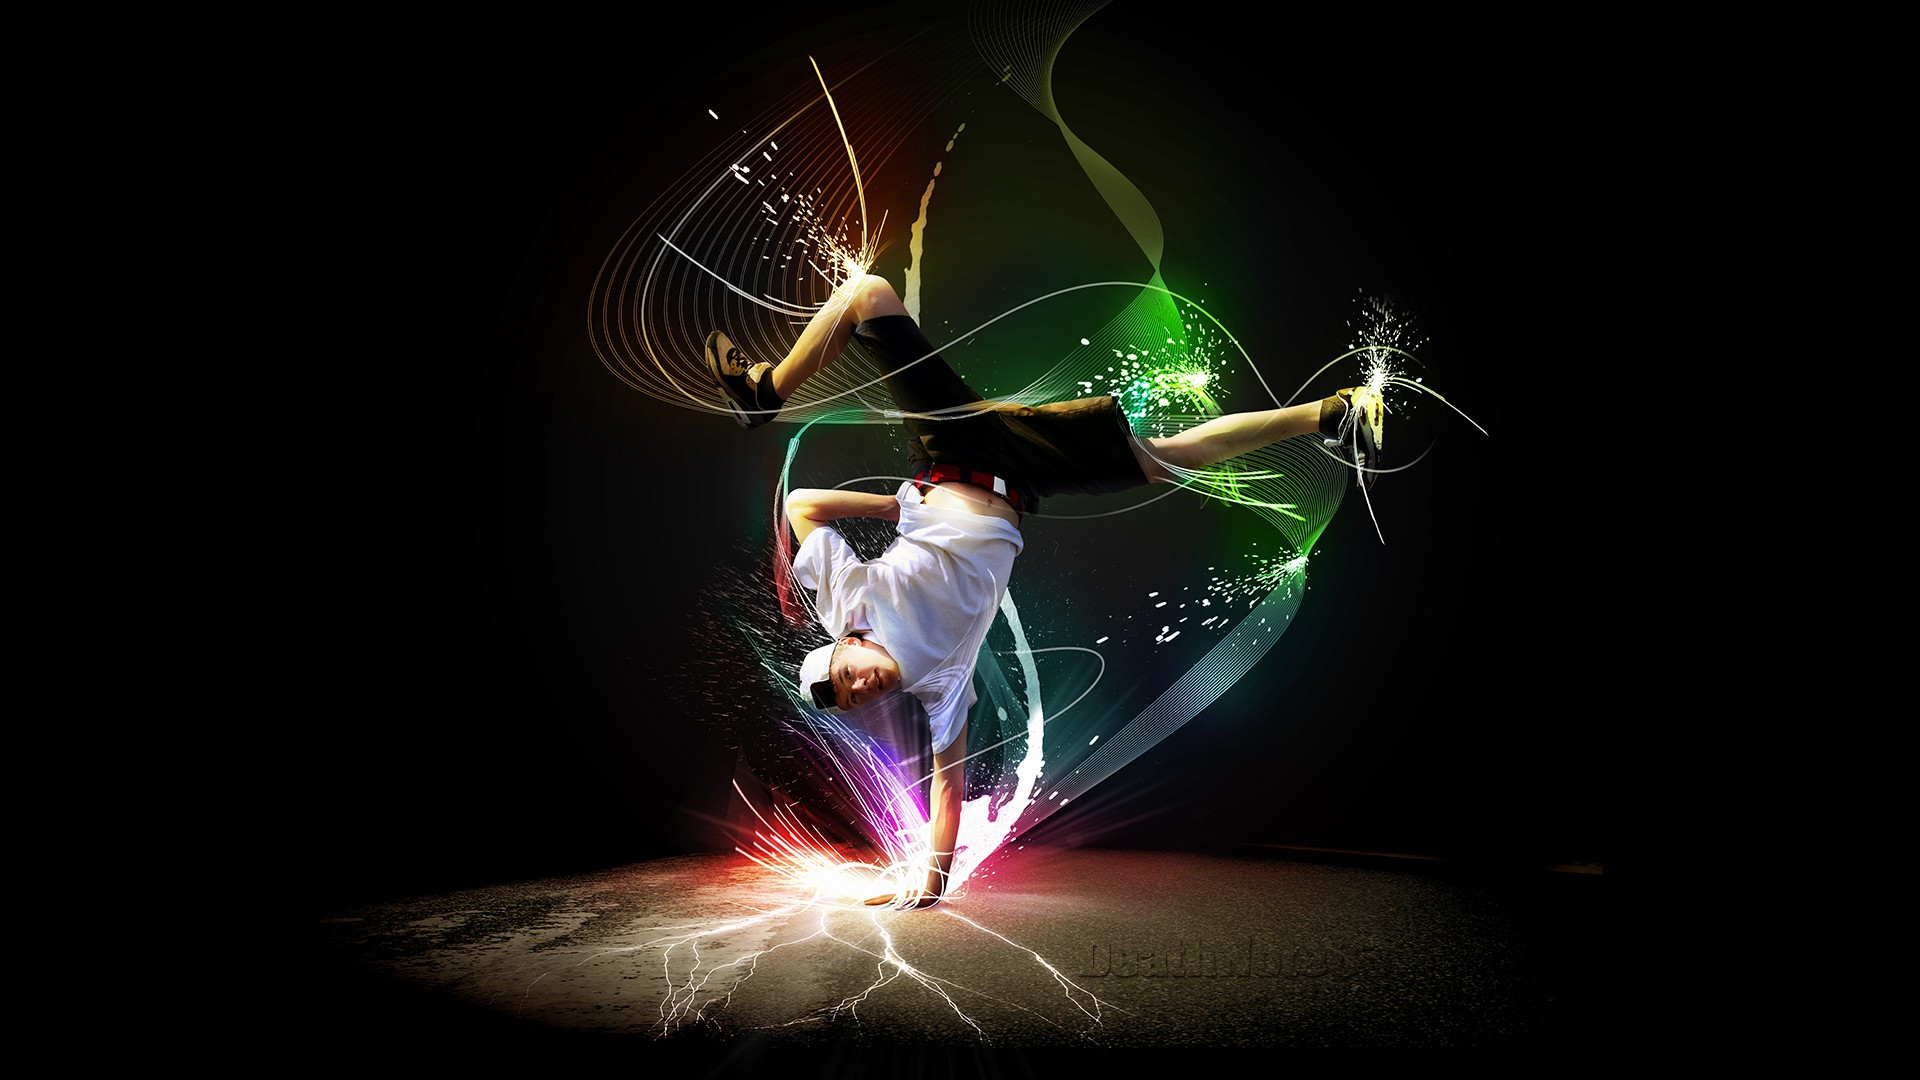 Breakdance Full HD Desktop Wallpapers